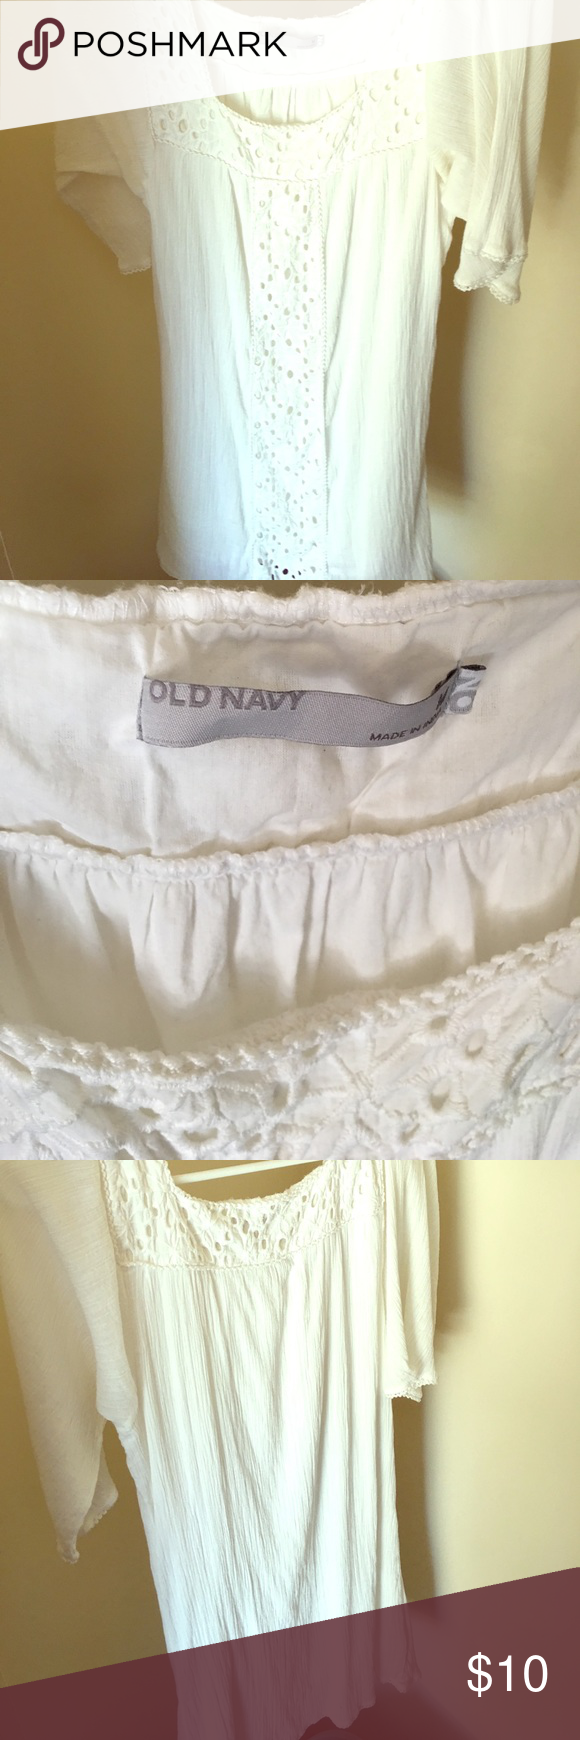 Perfect for a beach cover up Off -white dress Old Navy Swim Coverups